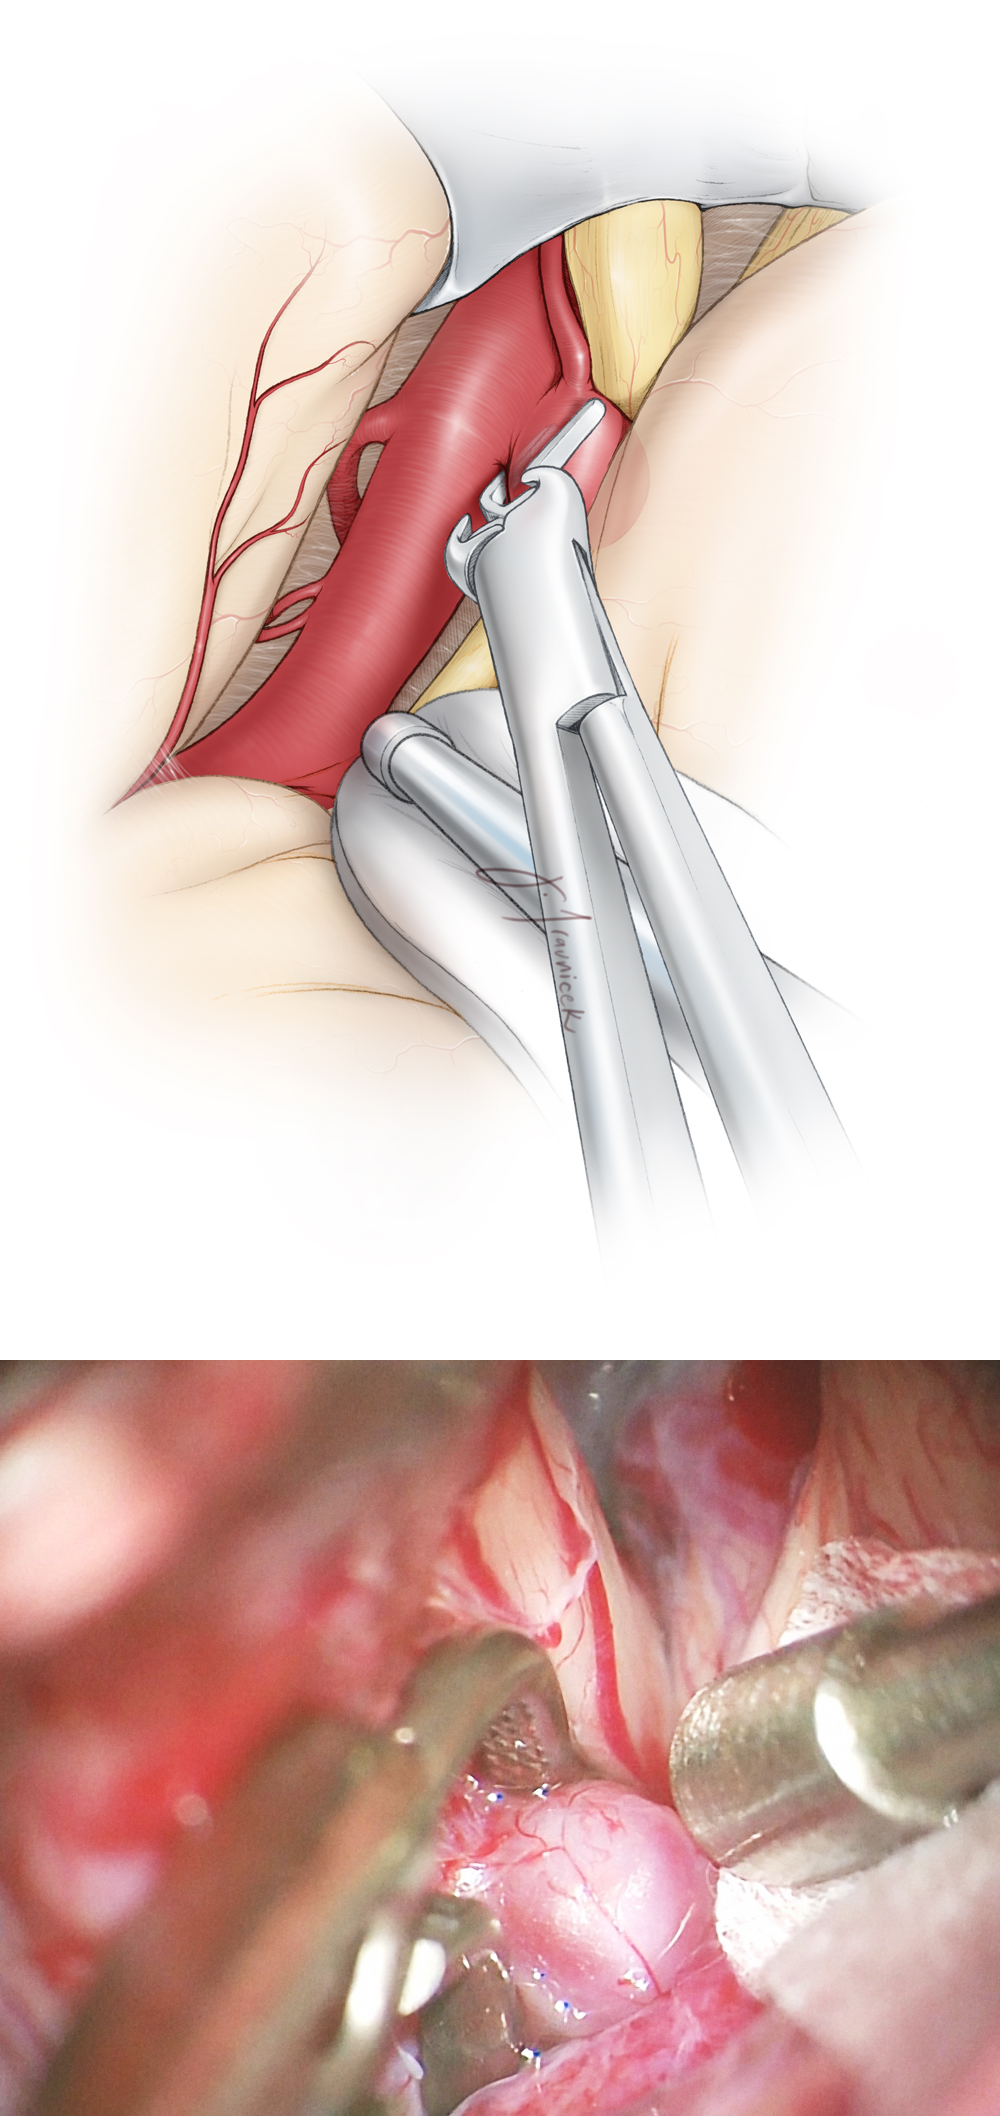 Figure 5: Although small ophthalmic artery aneurysms can be ligated with a straight or curved clip, I prefer to use side-angled clips for all such aneurysms regardless of their size or complexity (including partially atherosclerotic or thrombotic aneurysms). Side-angled clips orient the blades parallel to the long axis of the parent ICA and allow efficient neck closure without causing accordion-like shortening of the carotid trunk.  A perpendicular clipping technique across the ICA leads to partial neck closure, hemodynamic turbulence within the sac, and potentially intraoperative rupture.